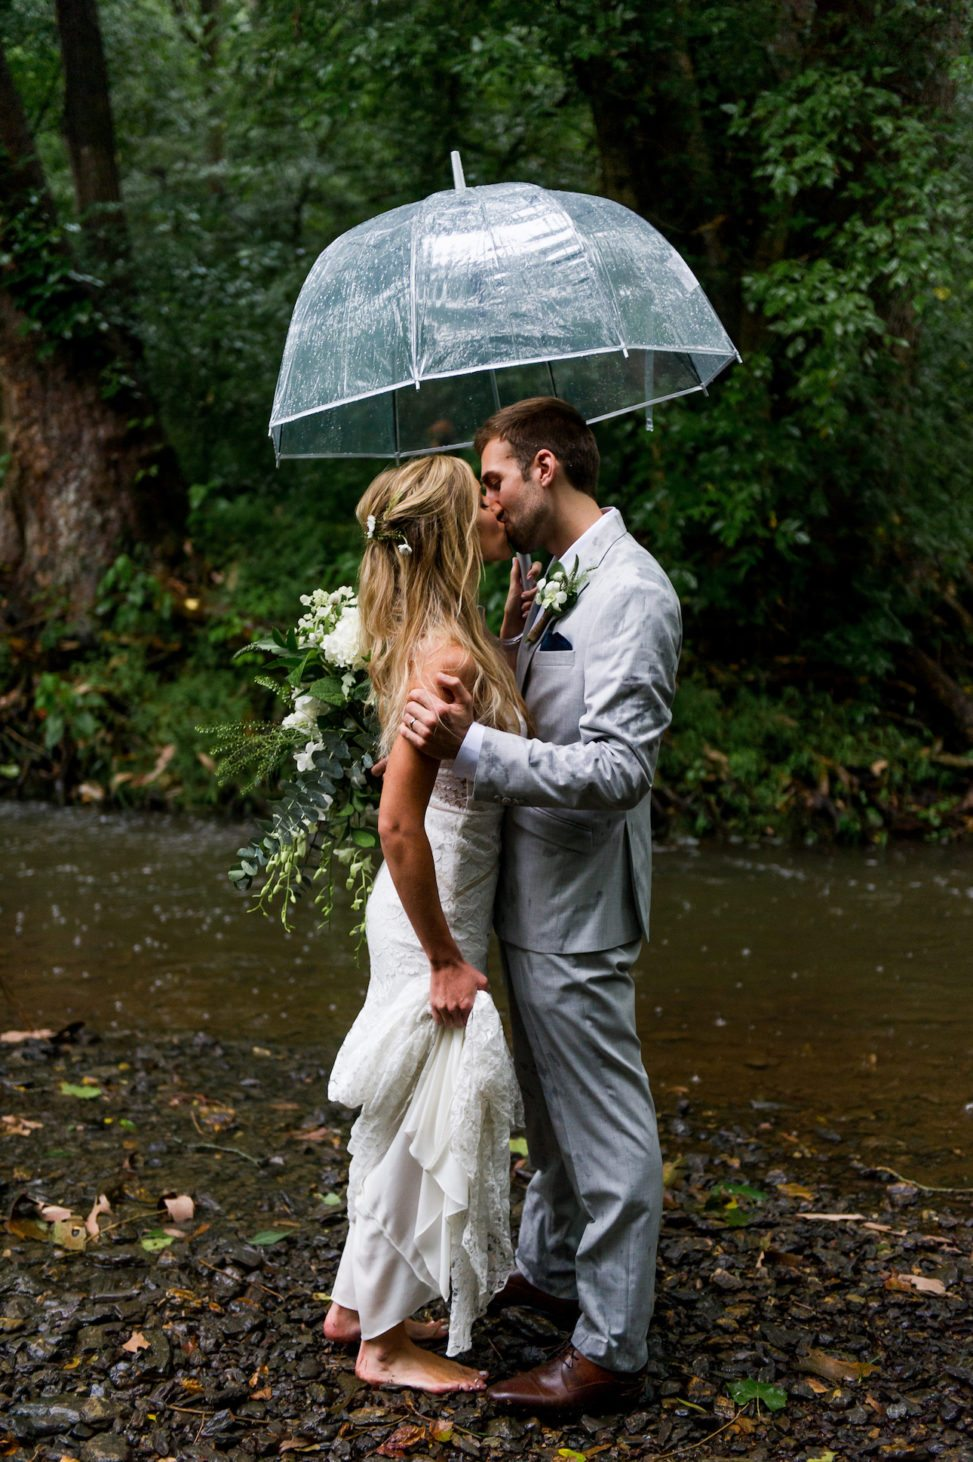 A man and woman kiss in the rain